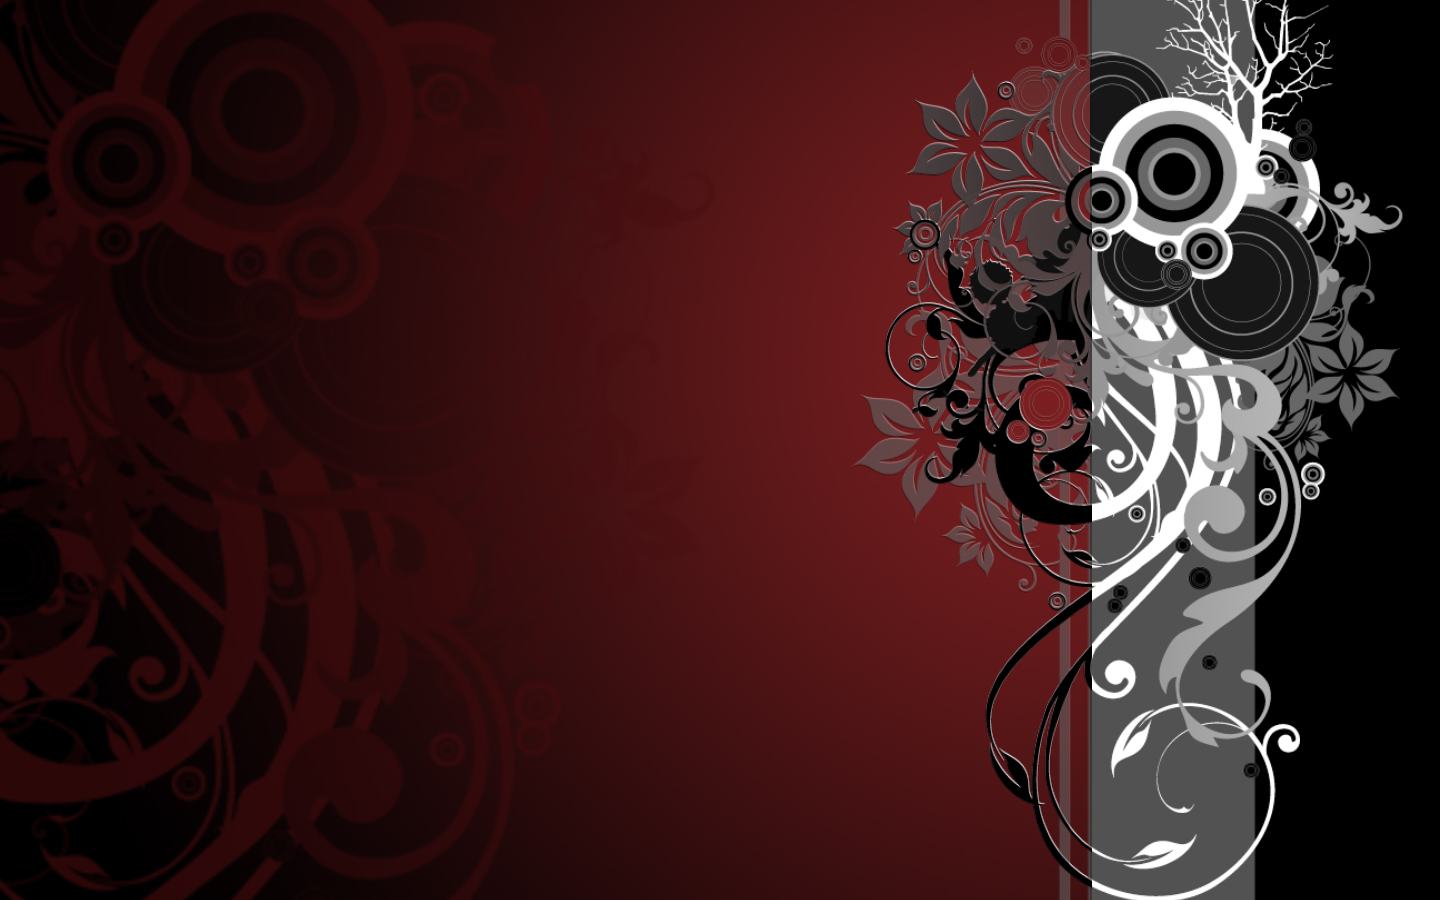 Cool red and black wallpapers 3 background wallpaper - Cool red and black wallpapers ...